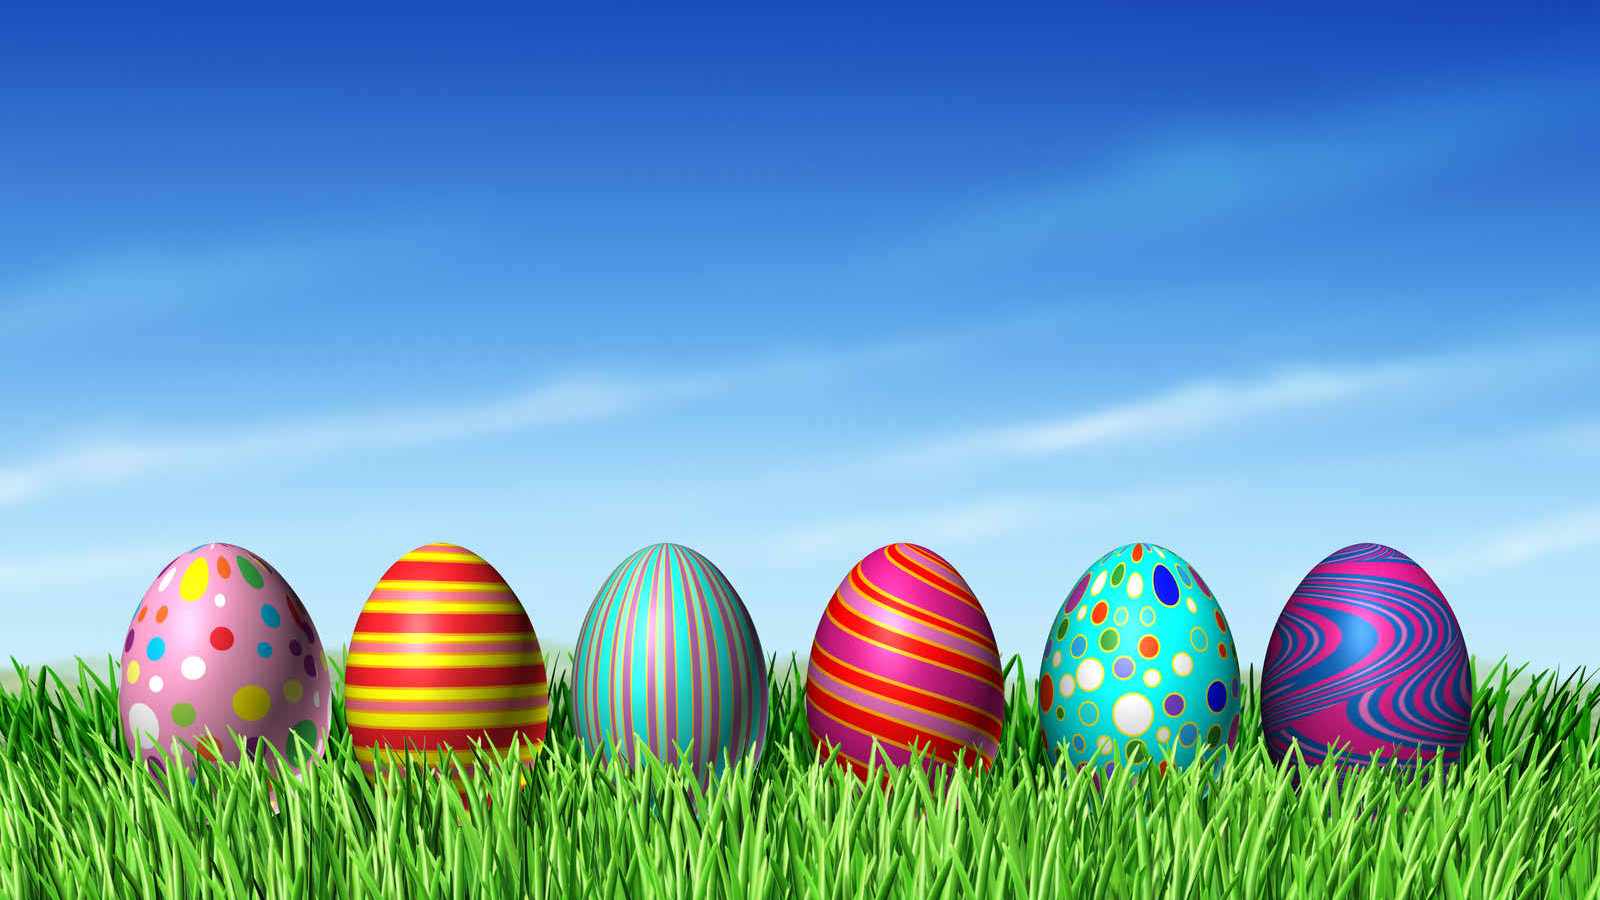 Free Download Easter Wallpapers Archives Hd Desktop Wallpapers